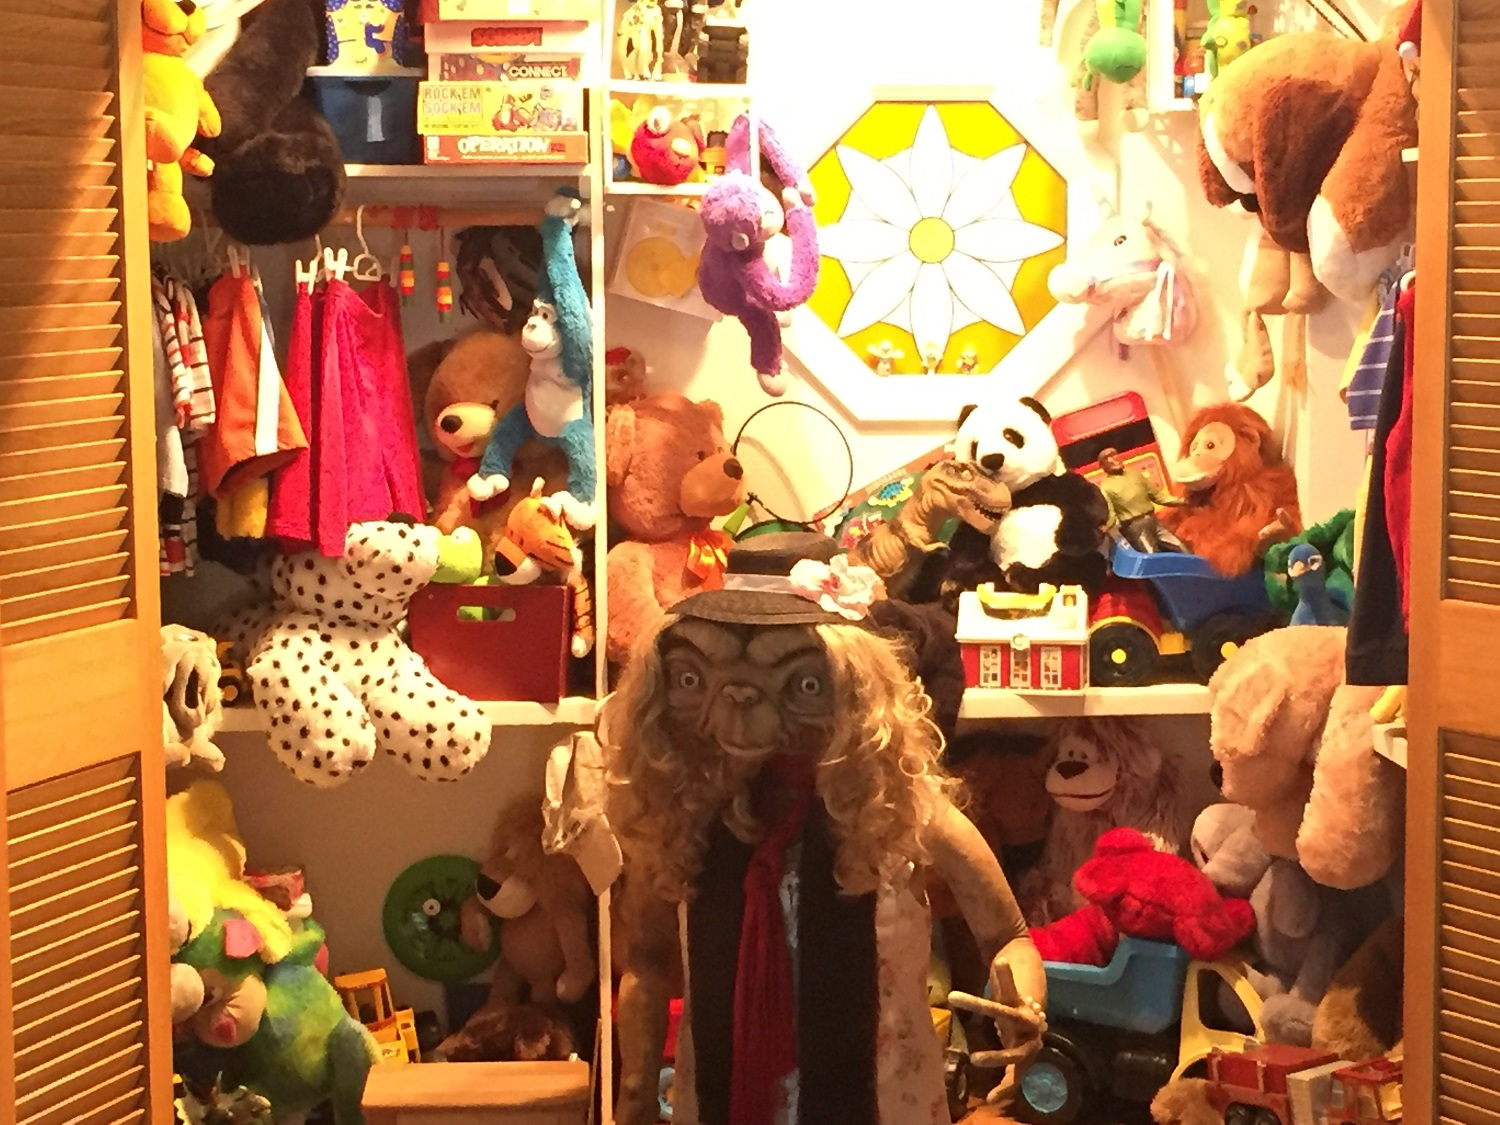 After riding E.T. Adventure, guests can take a picture with E.T. in E.T.'s Toy Closet.